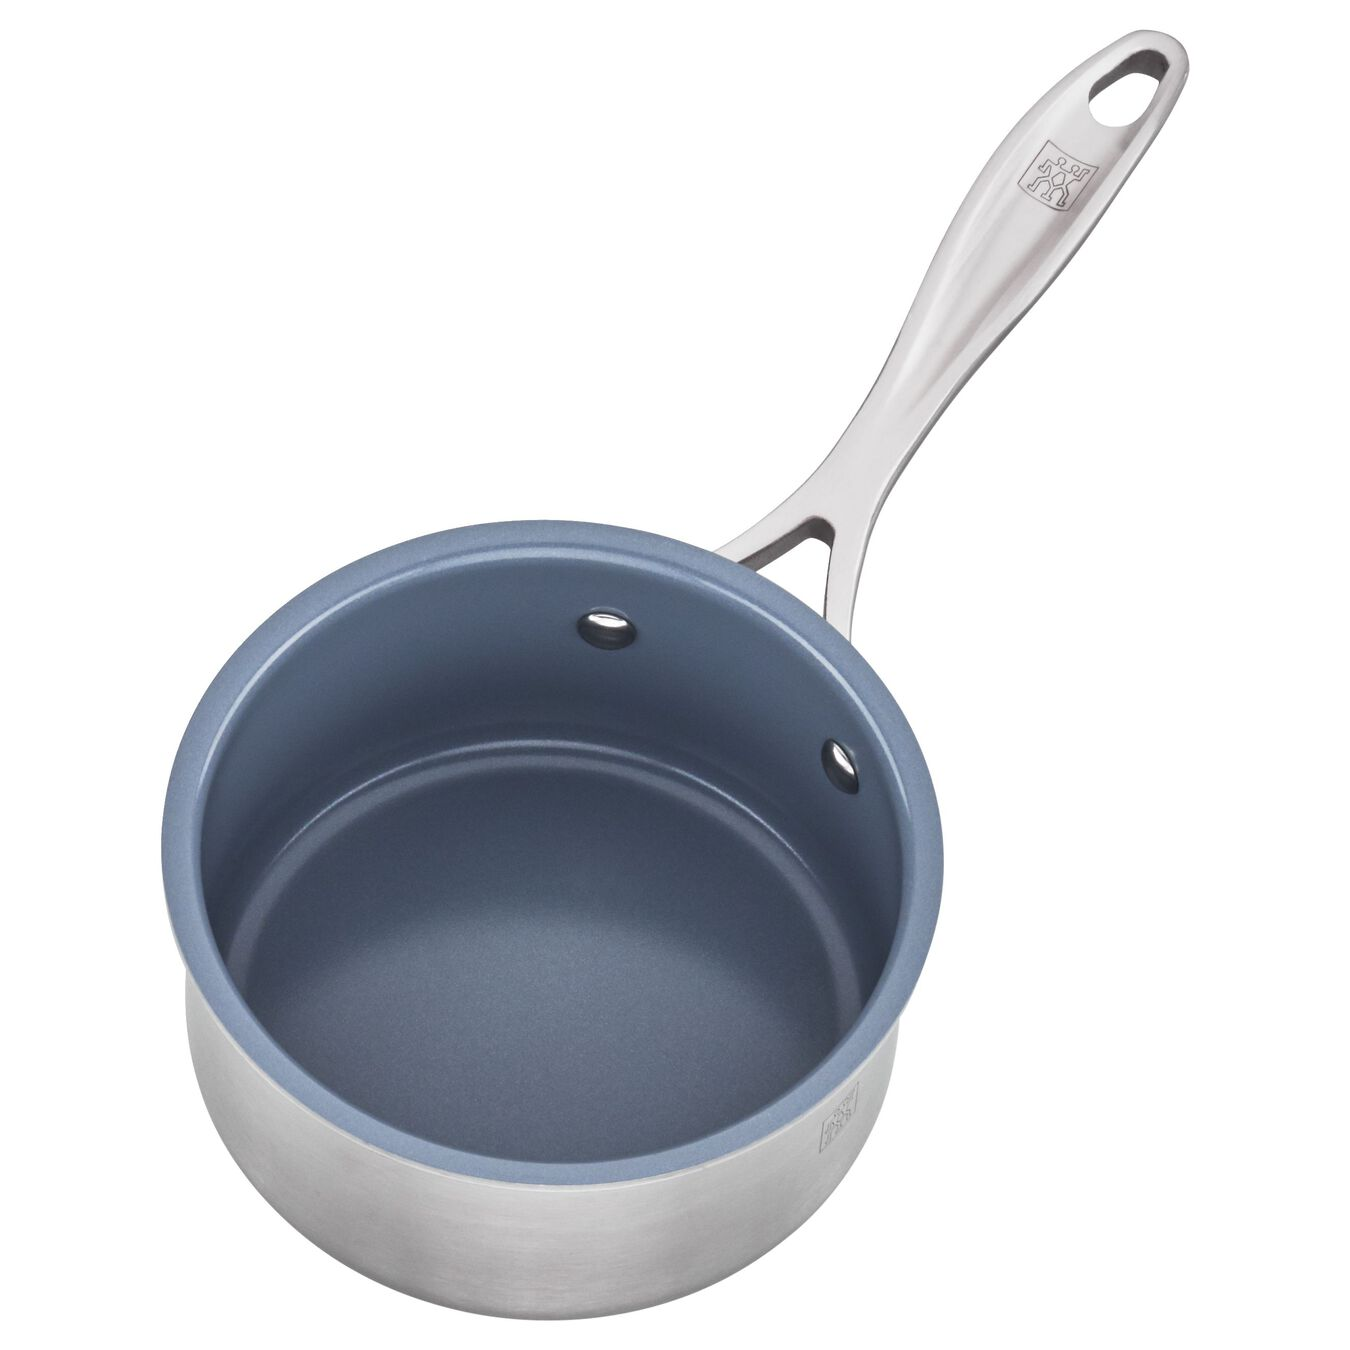 1 qt Sauce pan, 18/10 Stainless Steel ,,large 3